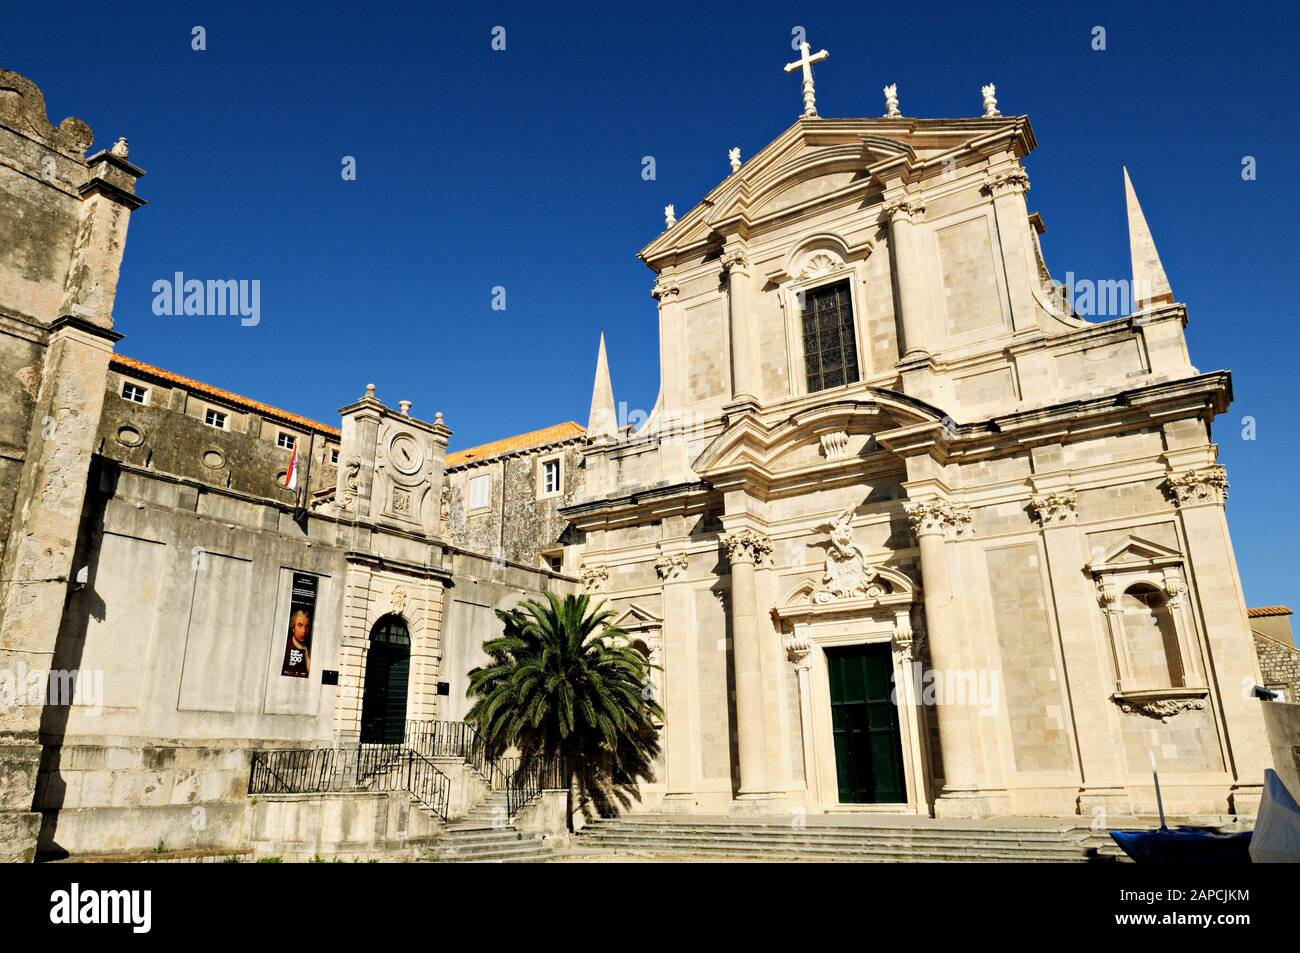 Saint Ignatius Church in Dubrovnik, Croatia Stock Photo